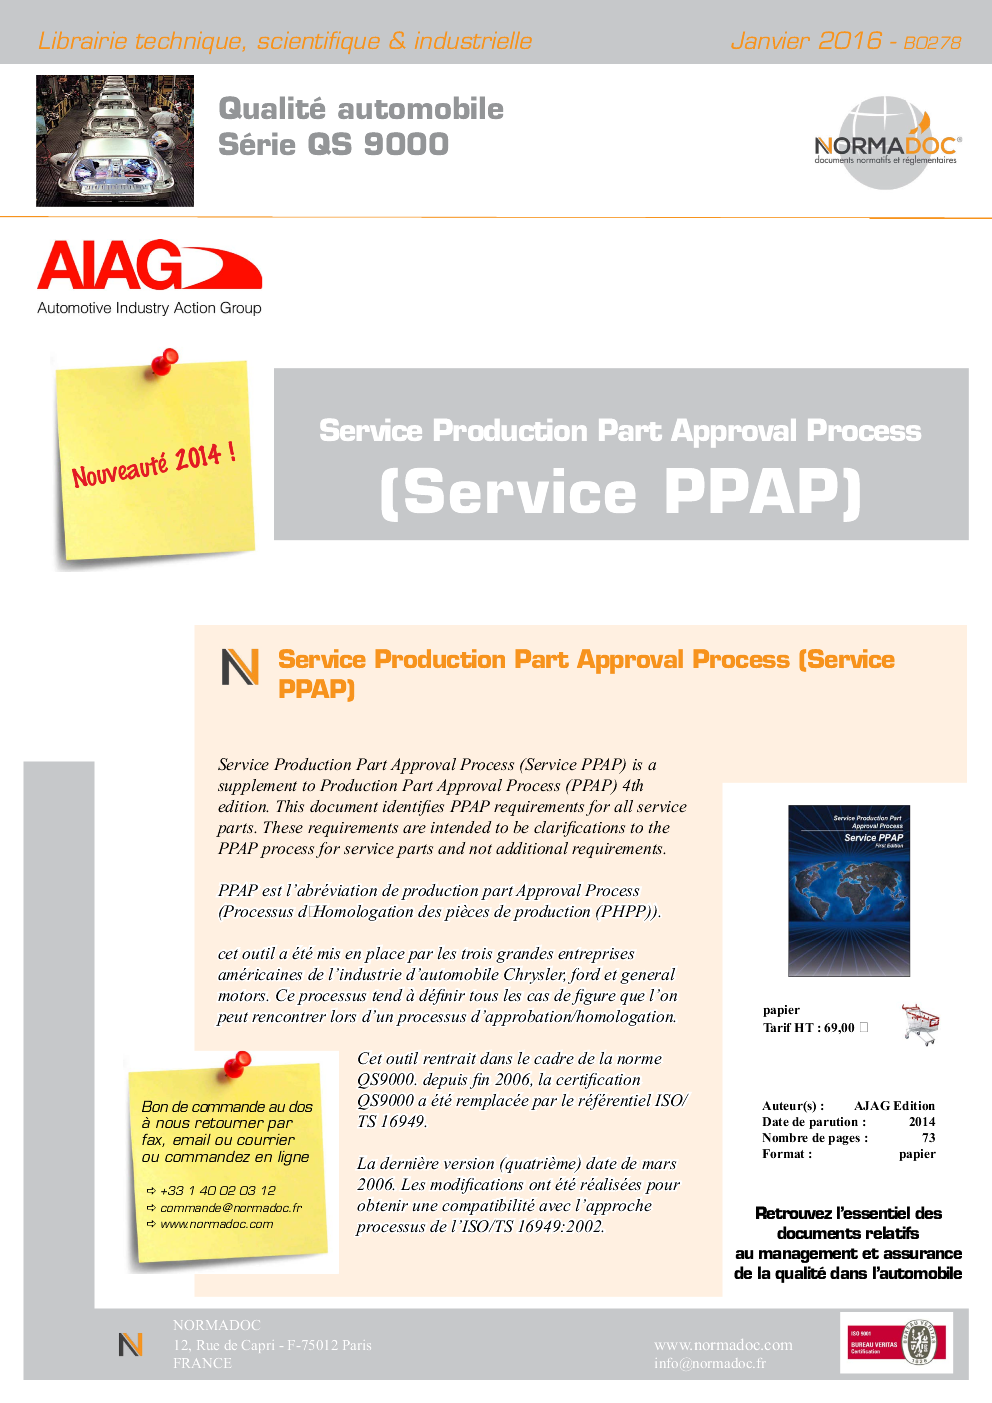 Service PPAP - Service production Part Approval Process